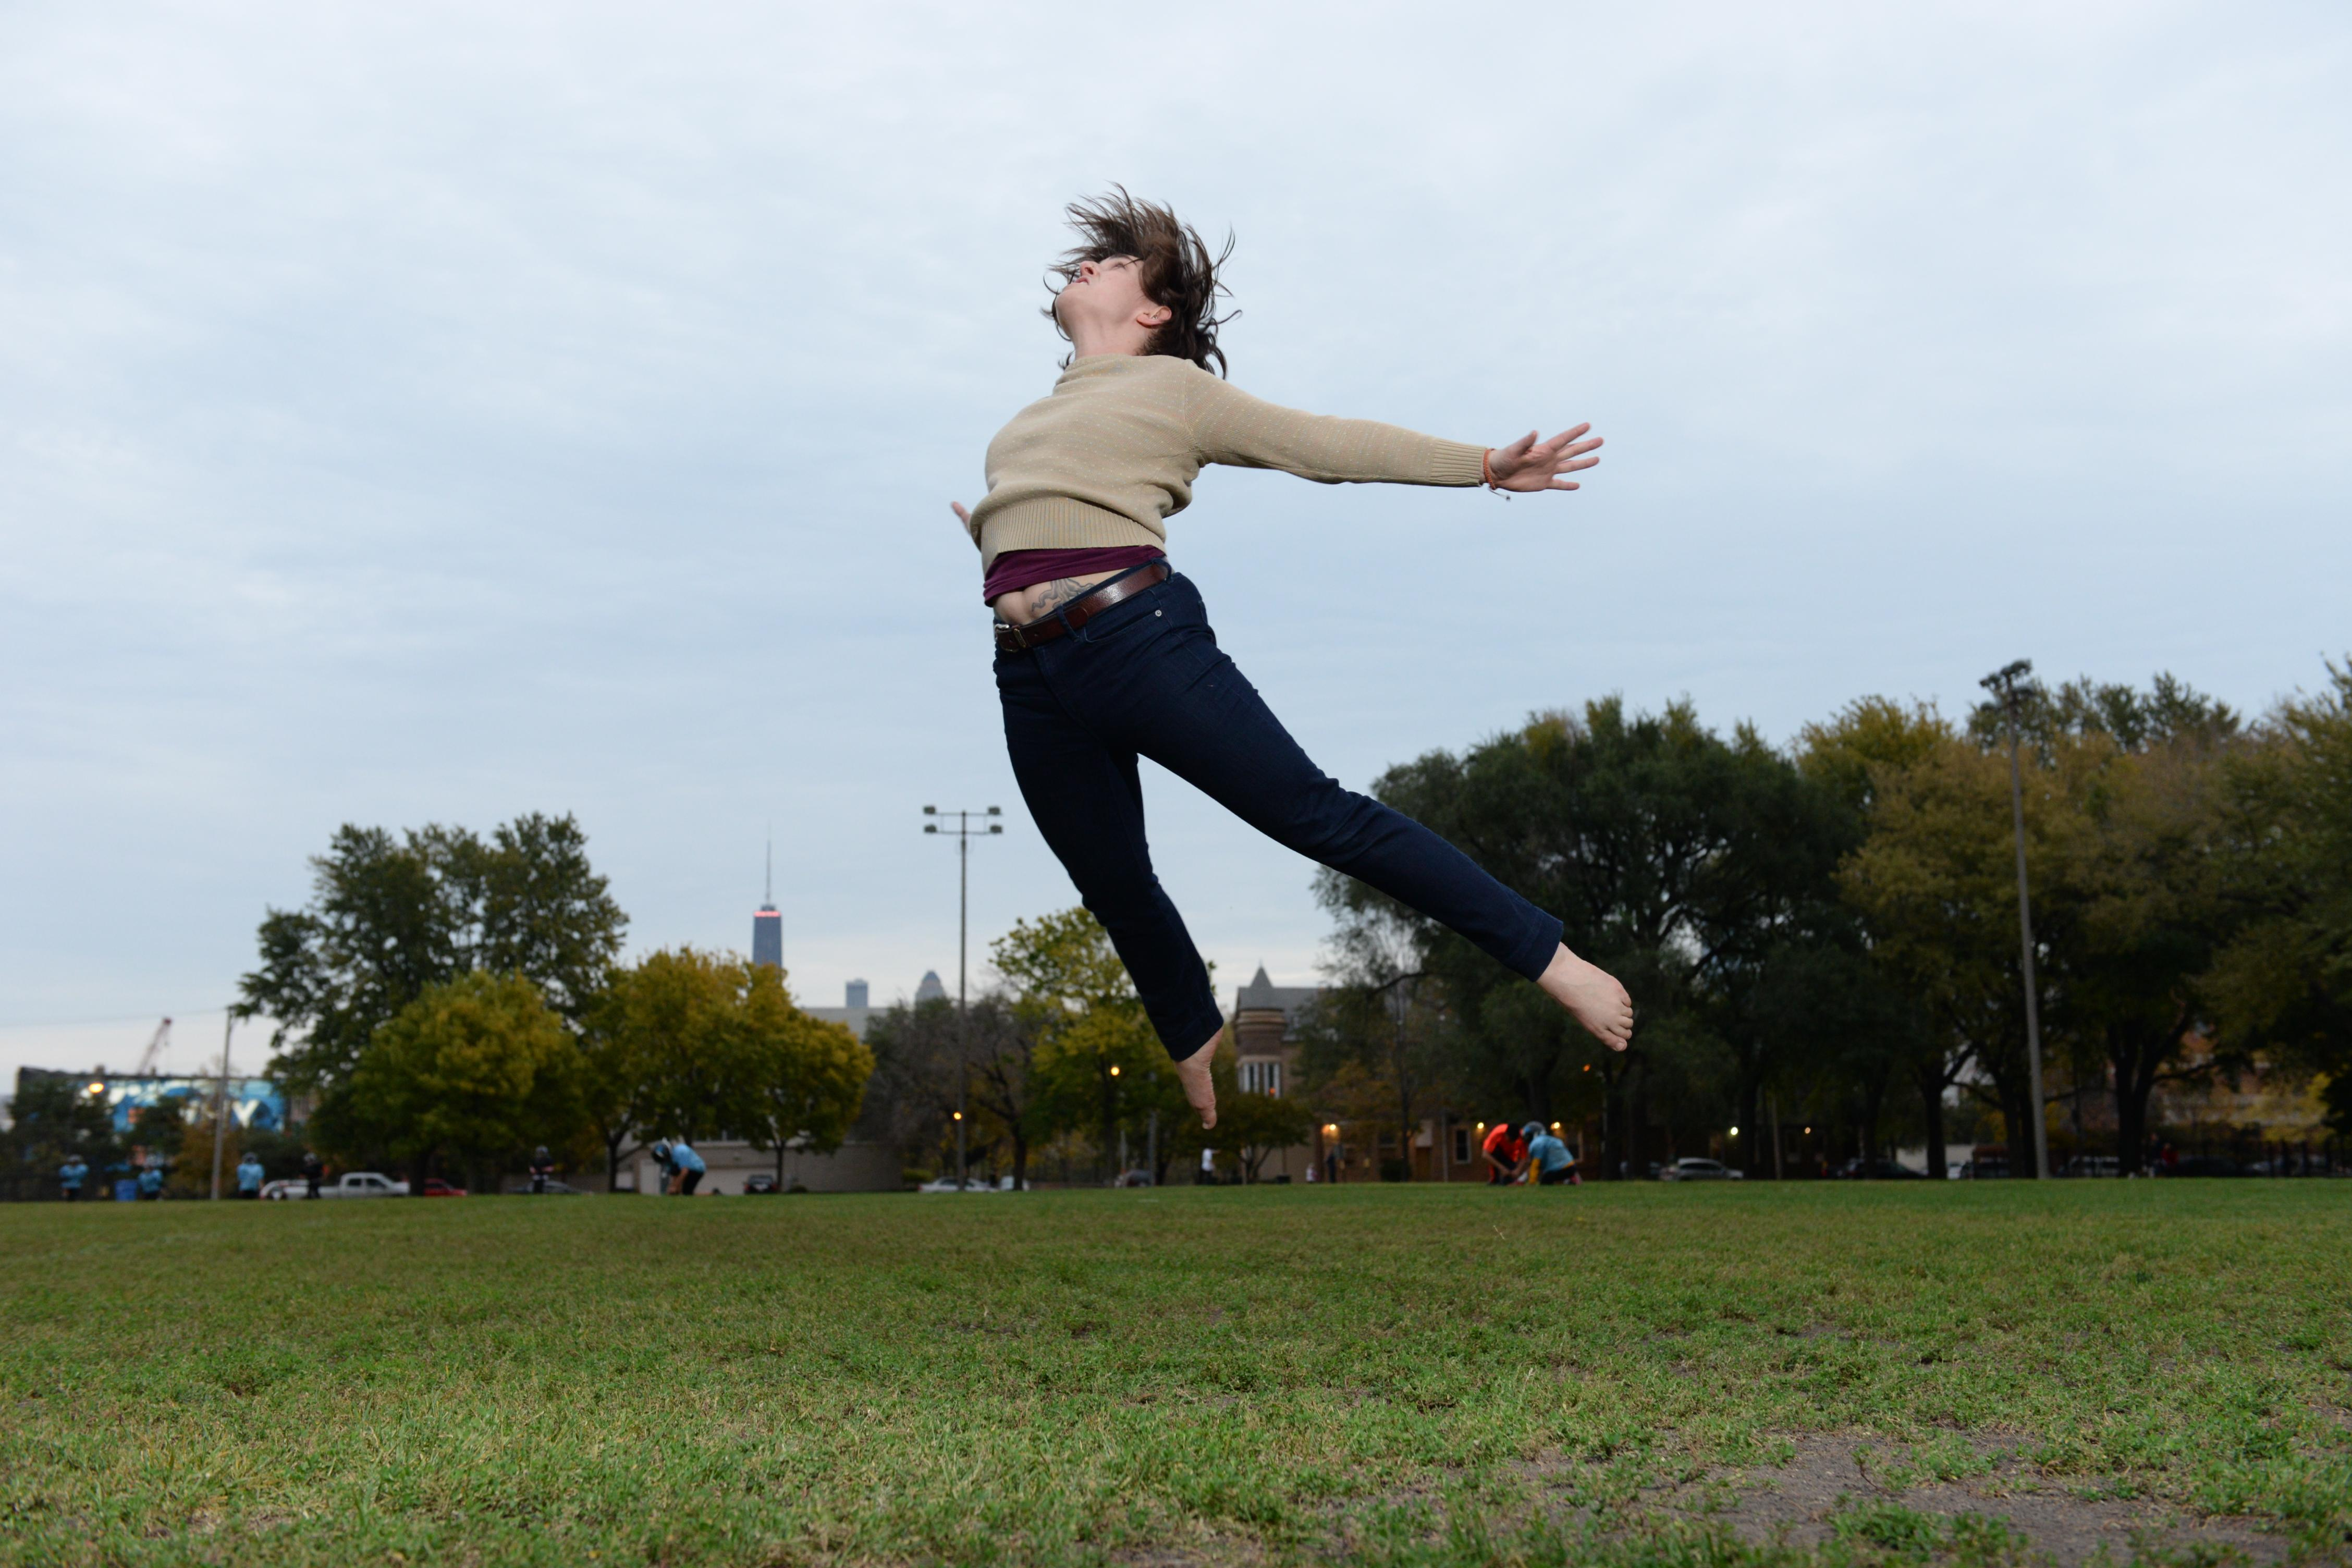 A person jumps leaning forward in mid air, with arms and legs stretched backwards.